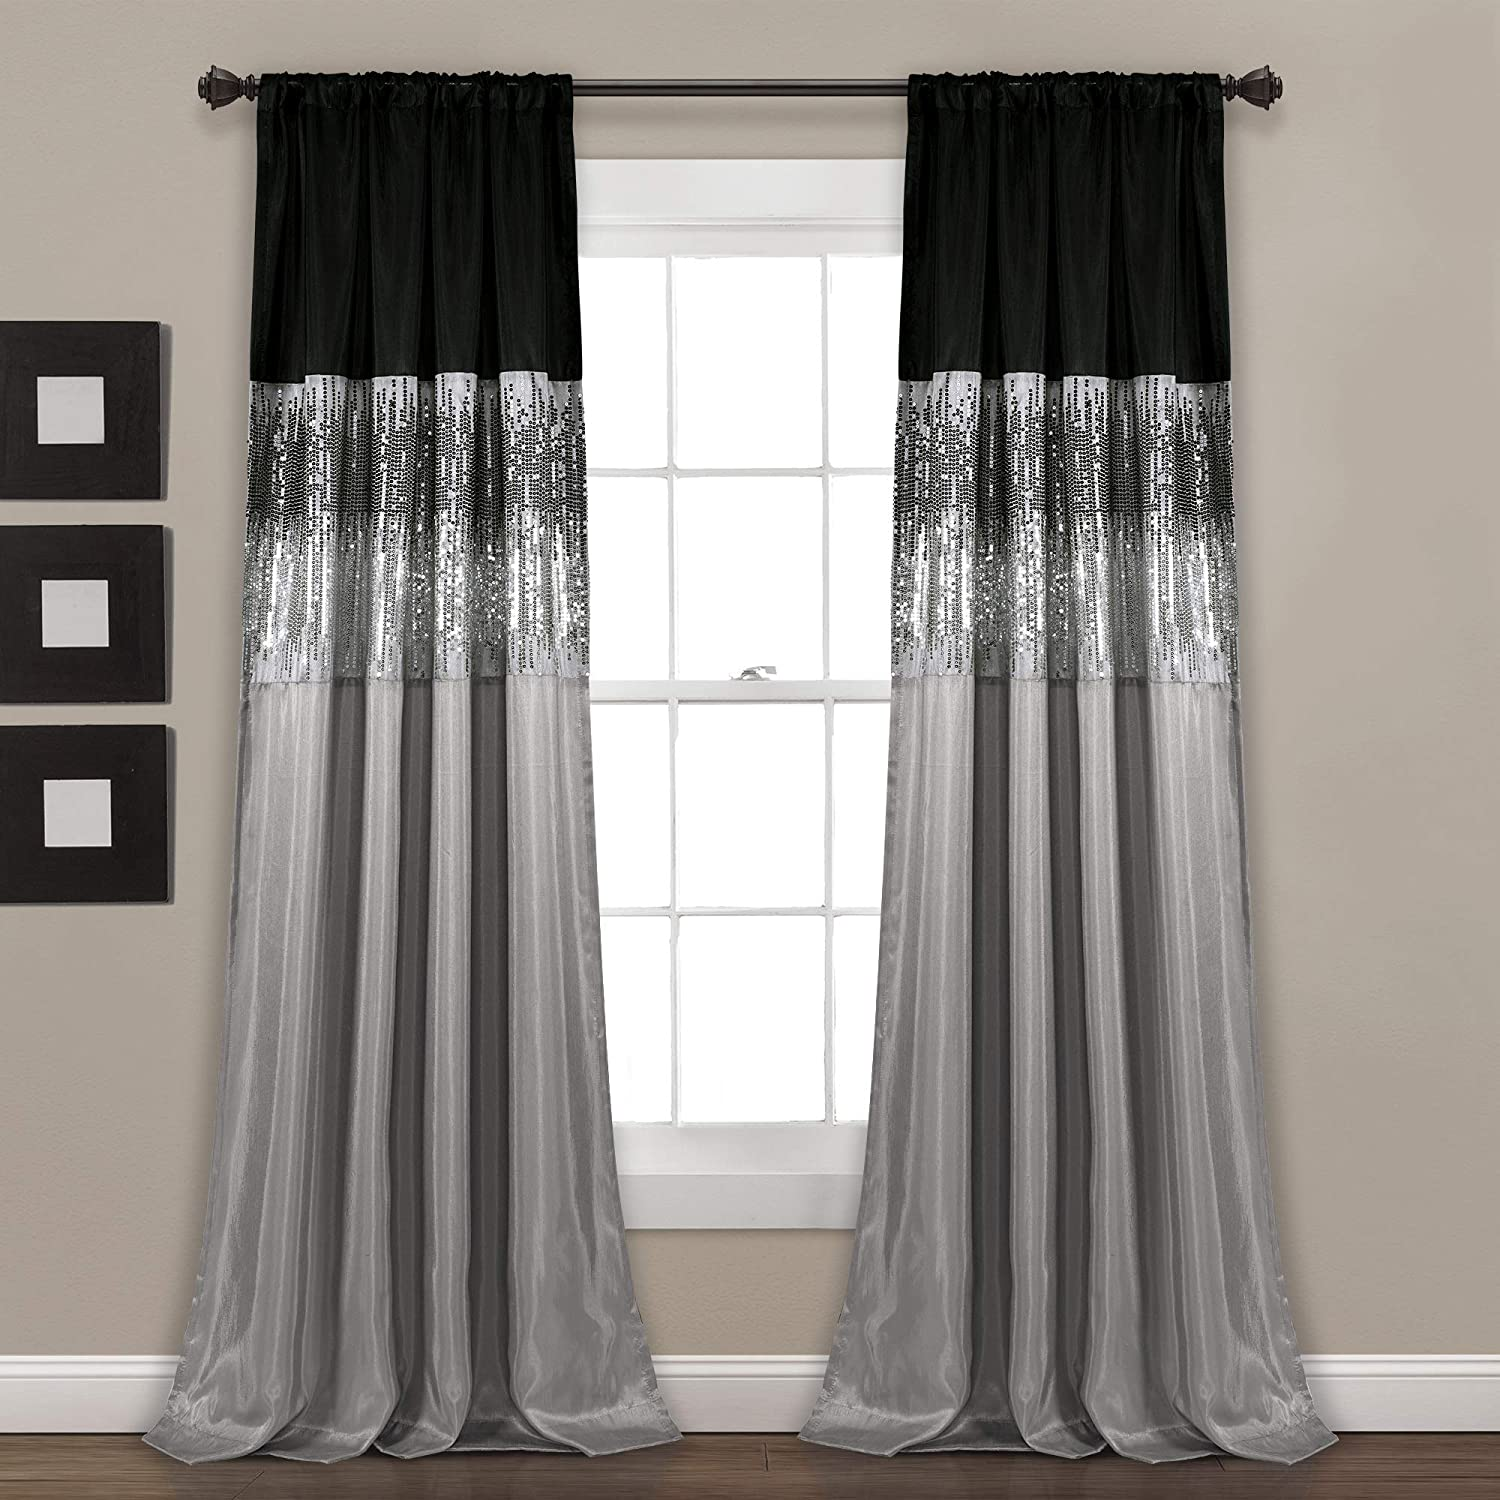 Lush Décor Night Sky Panel For Living Bedroom Dining Room Single Curtain 84 X 42 Grey And Black Home Kitchen